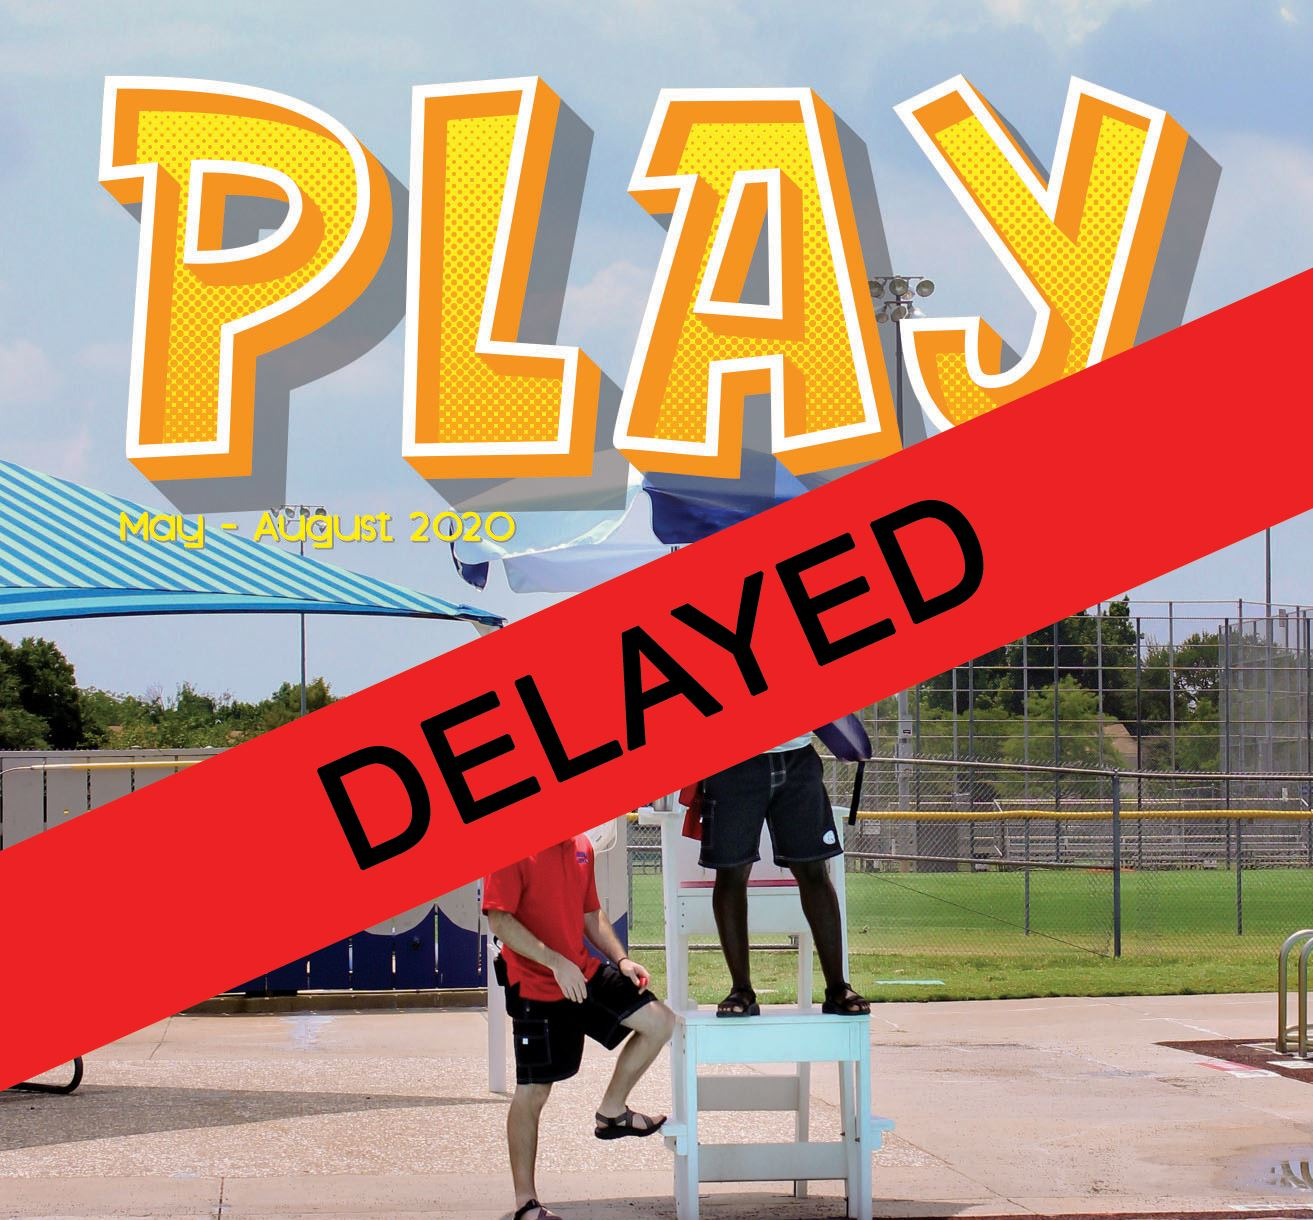 Summer Play Guide Delayed, Banner alert over the life guards at the pool, cover for Summer Play Guid